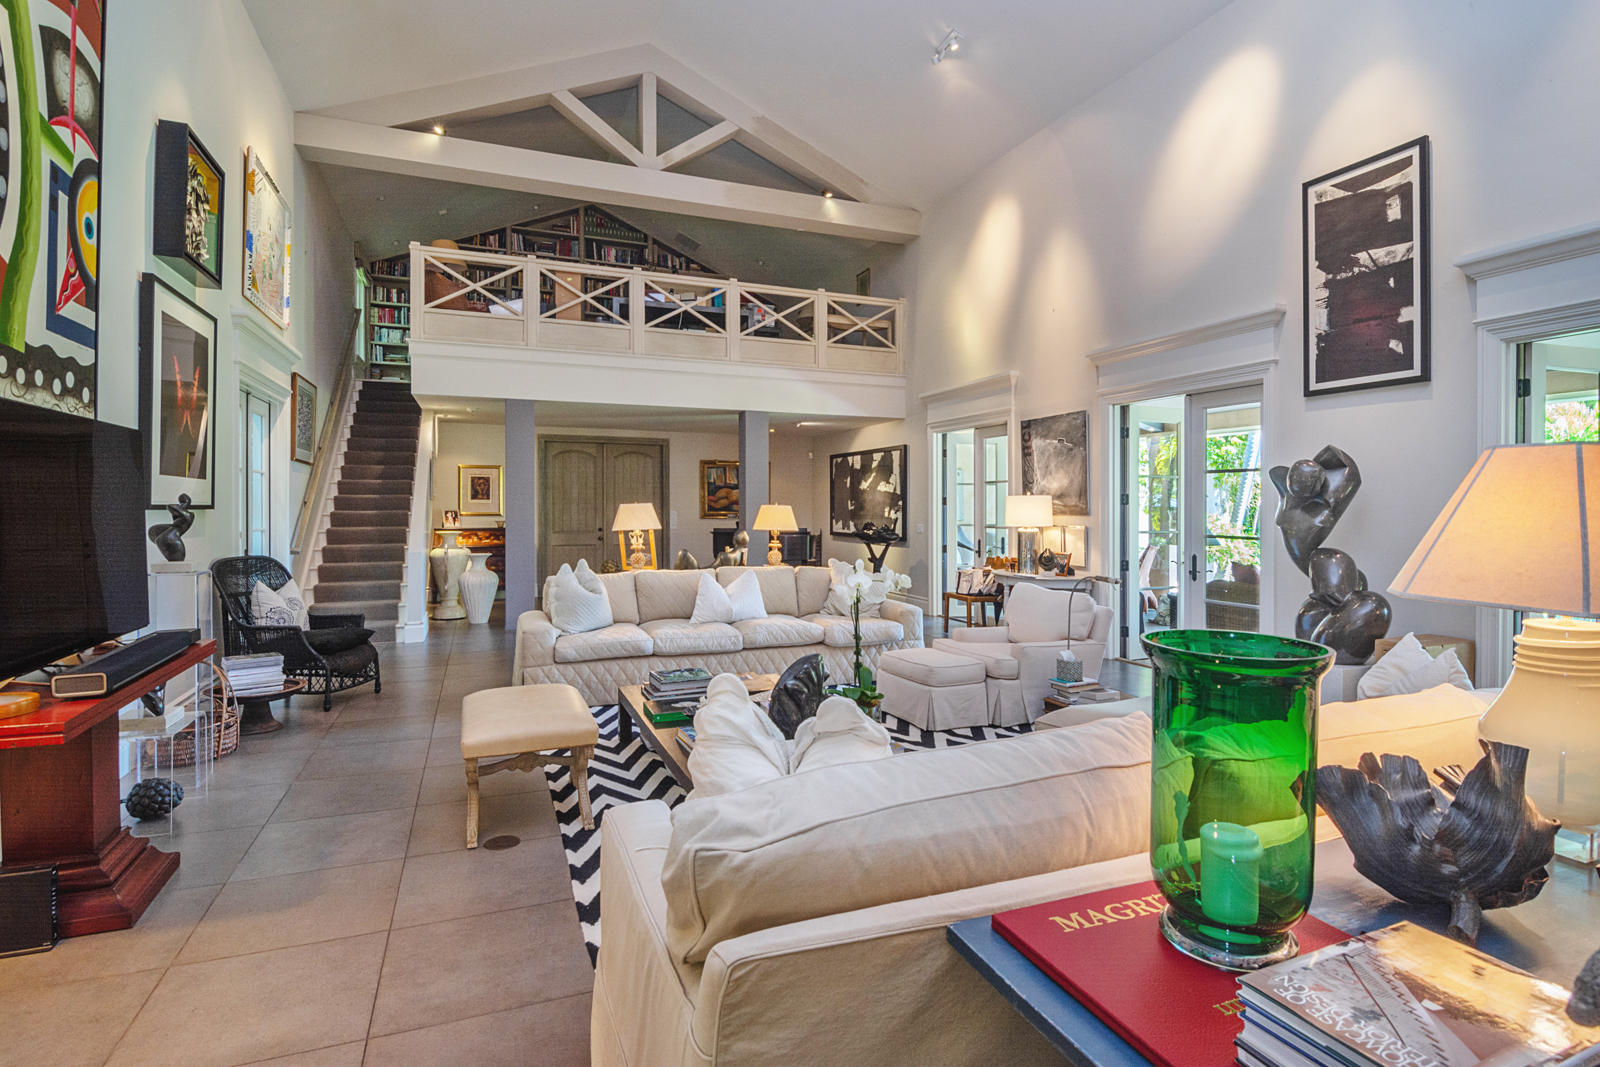 ORCHID LANE WEST PALM BEACH REAL ESTATE